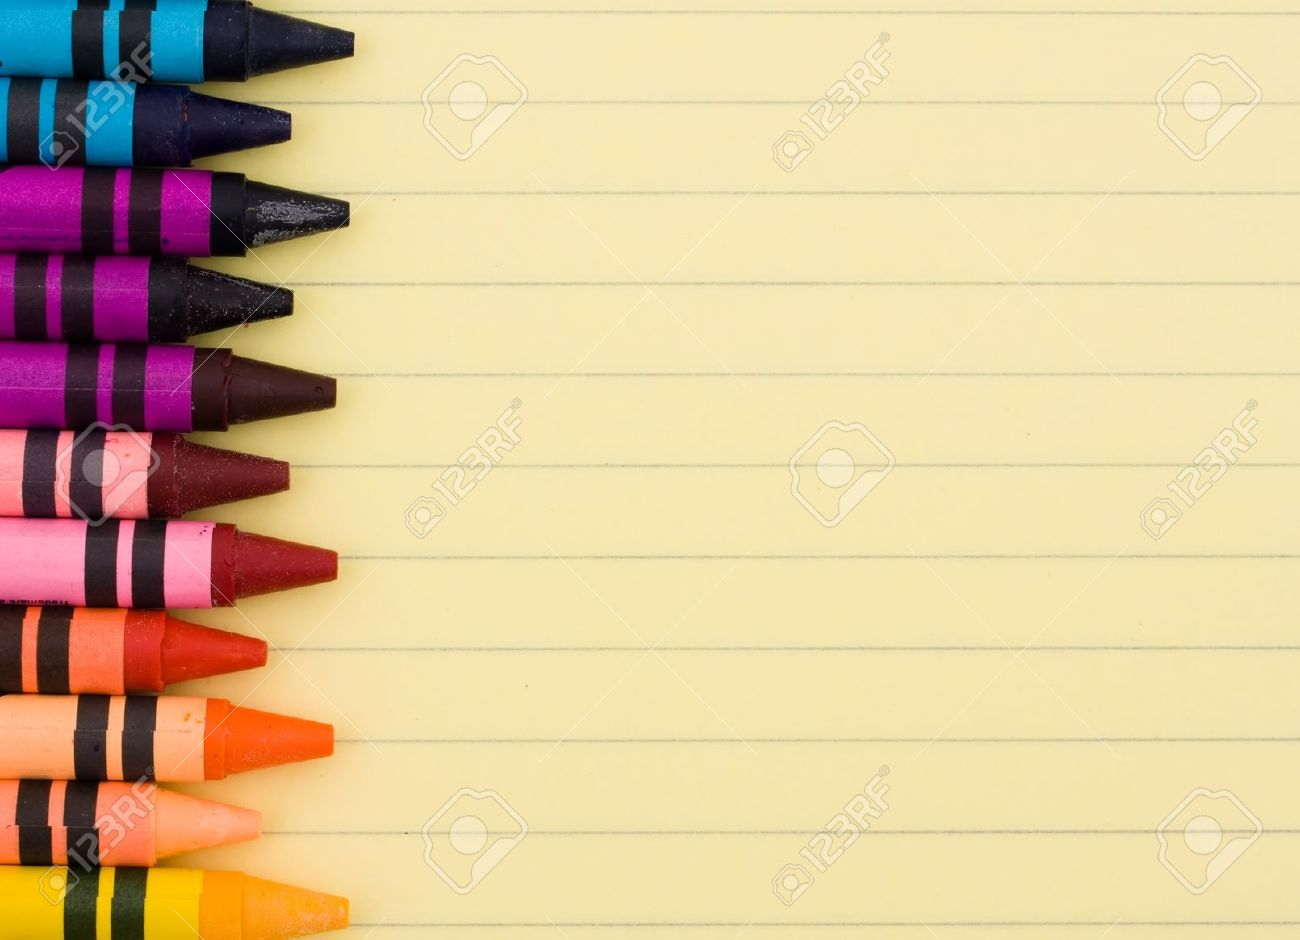 Colorful Crayons On A Sheet Of Lined Paper Education Background